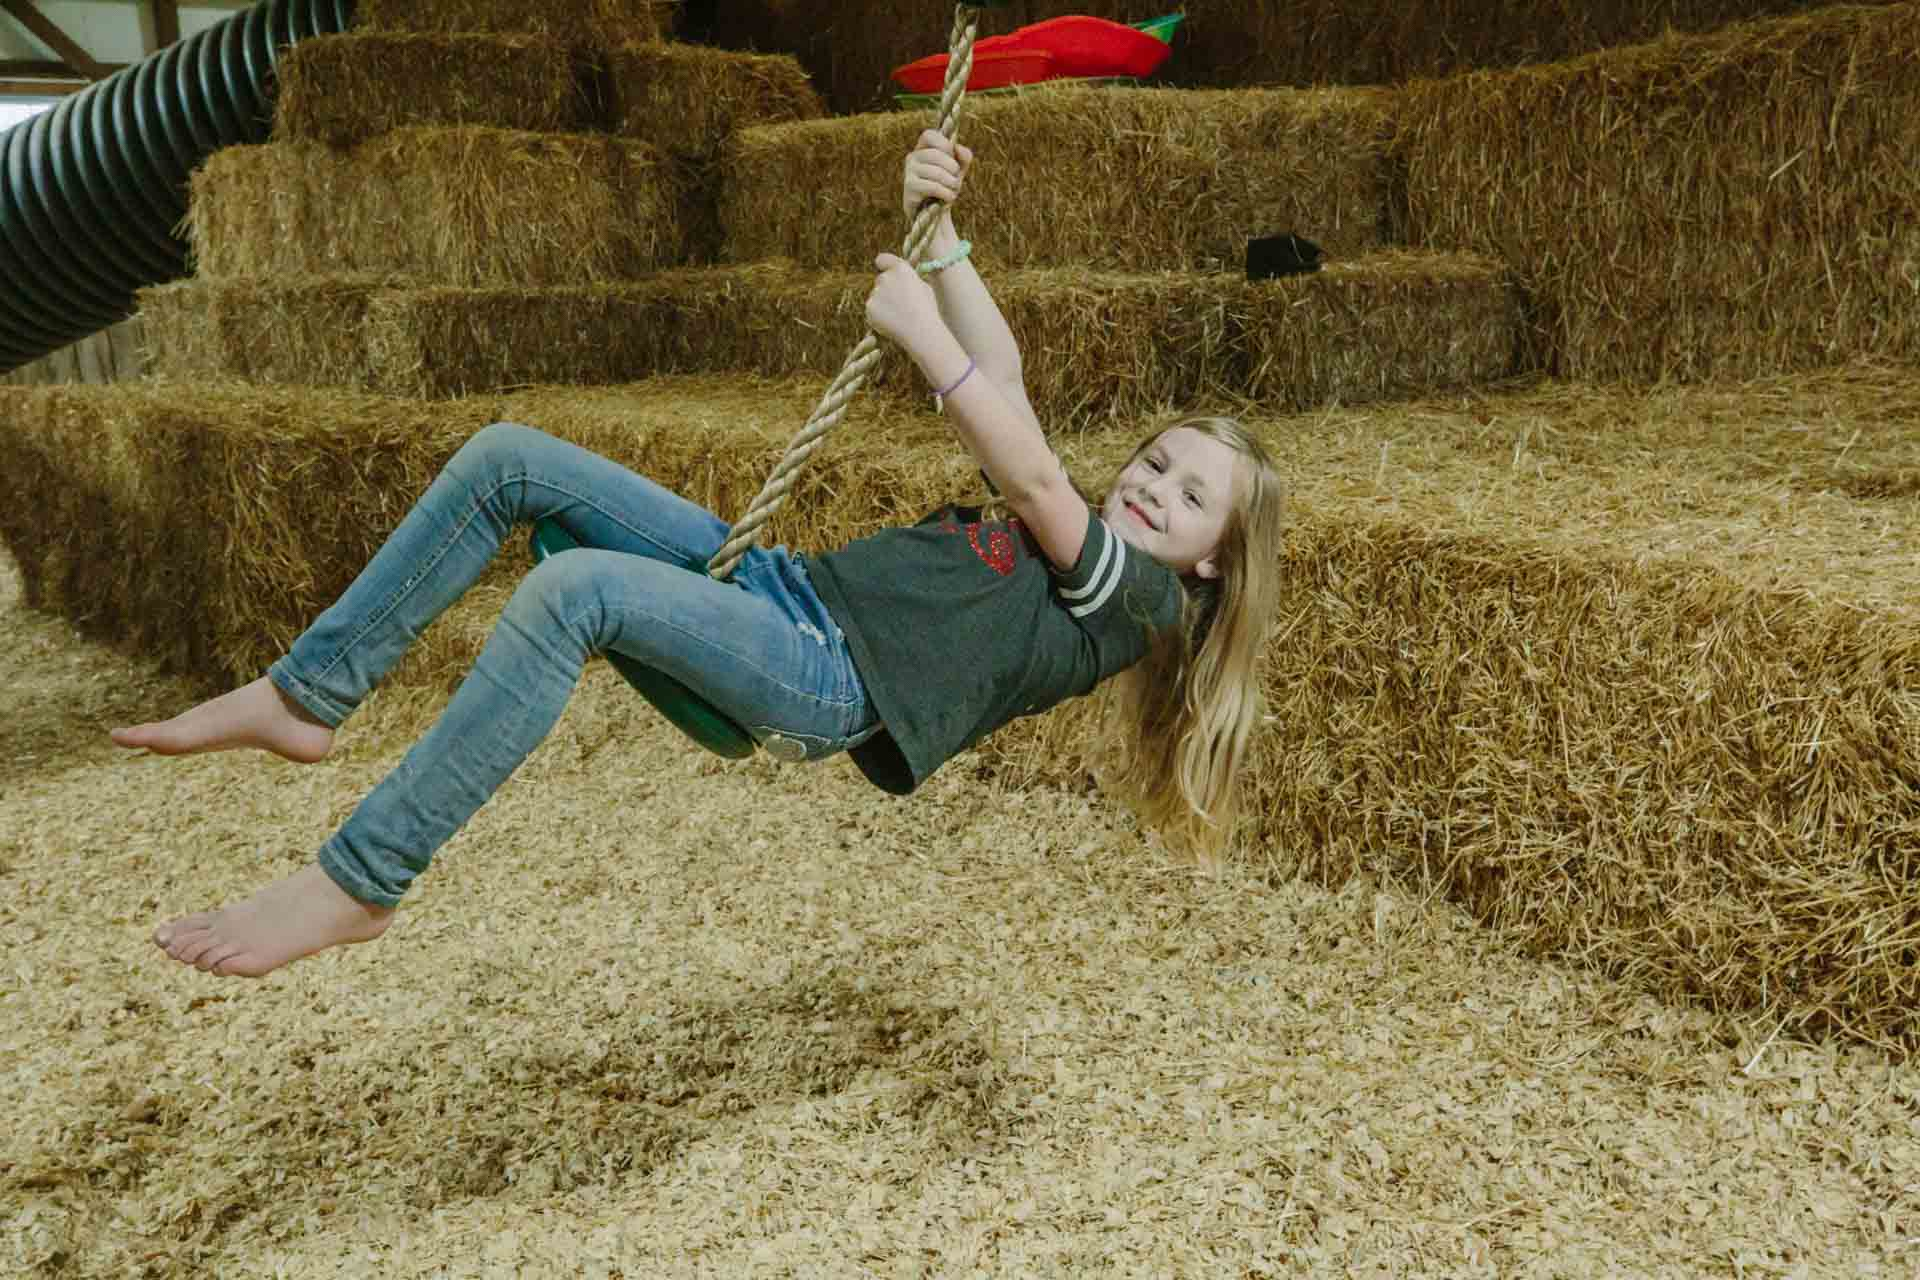 Fun in our climate-controlled indoor fun barn at Country Roads Family Fun Farm